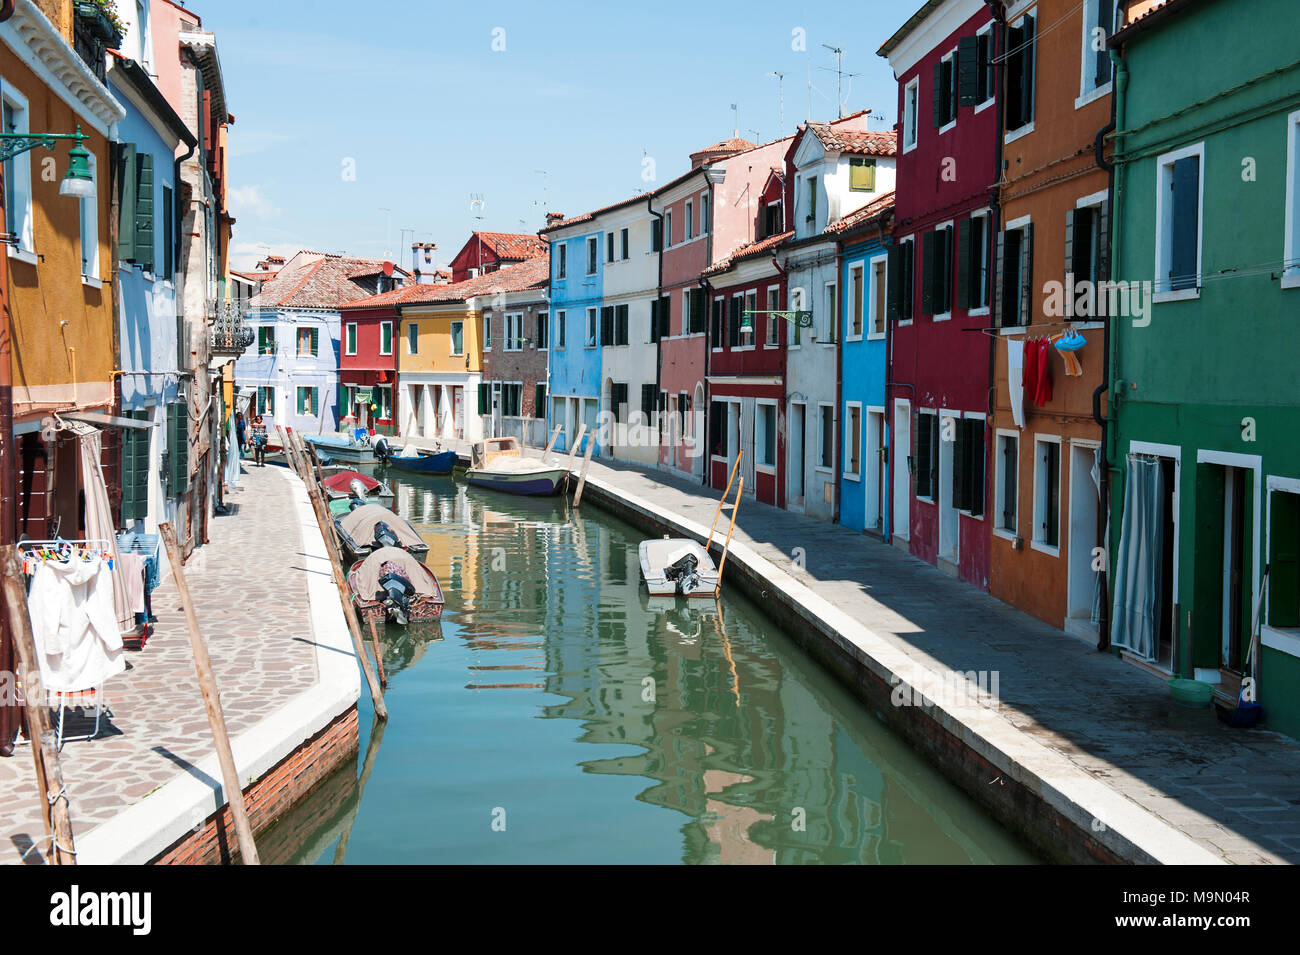 BURANO, VENICE, ITALY - APRIL 16, 2017 : View of the canal and brightly colorful houses in a sunny day - Stock Image